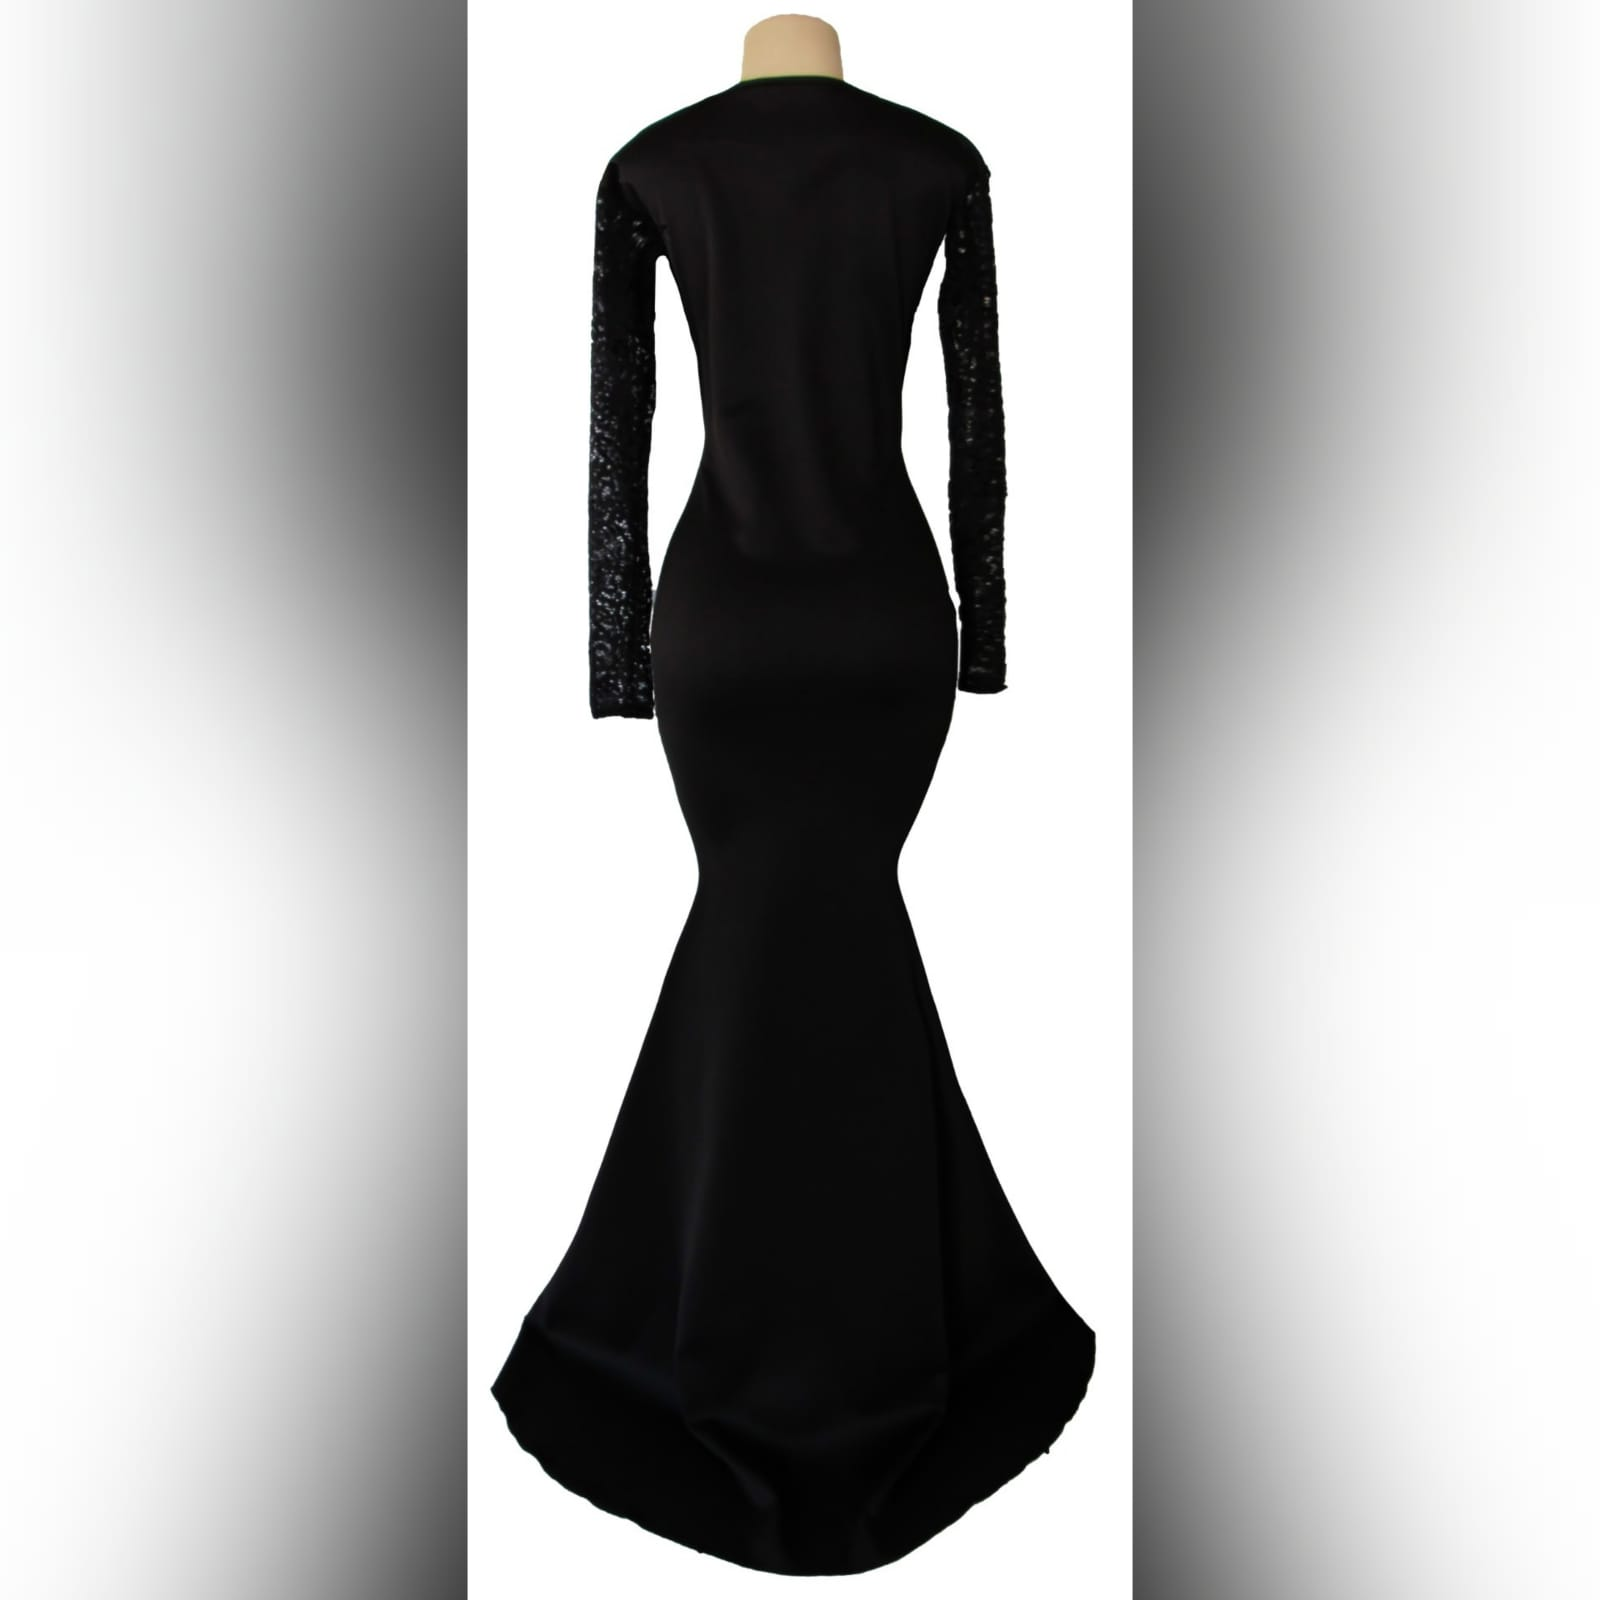 Black soft mermaid formal dress 3 black soft mermaid formal dress with sheer lace sleeves and a diamond shaped cleavage opening with a train.